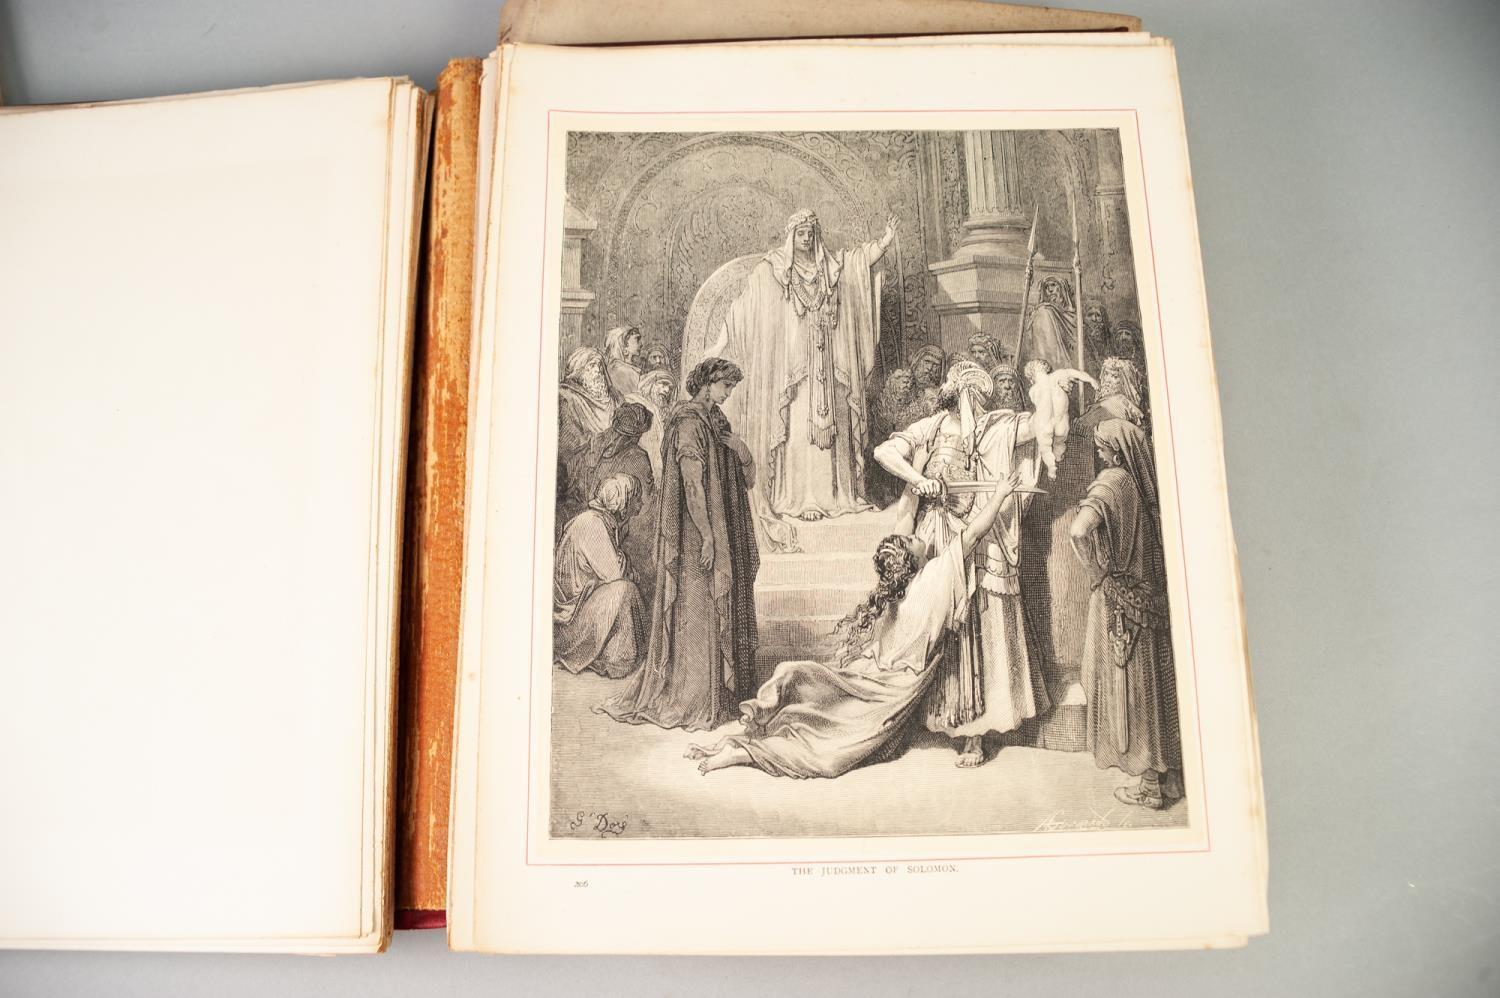 Lot 30 - MERA SETT, SCULPTURED MELODIES, privately printed for the author by Grant Richards, signed limited